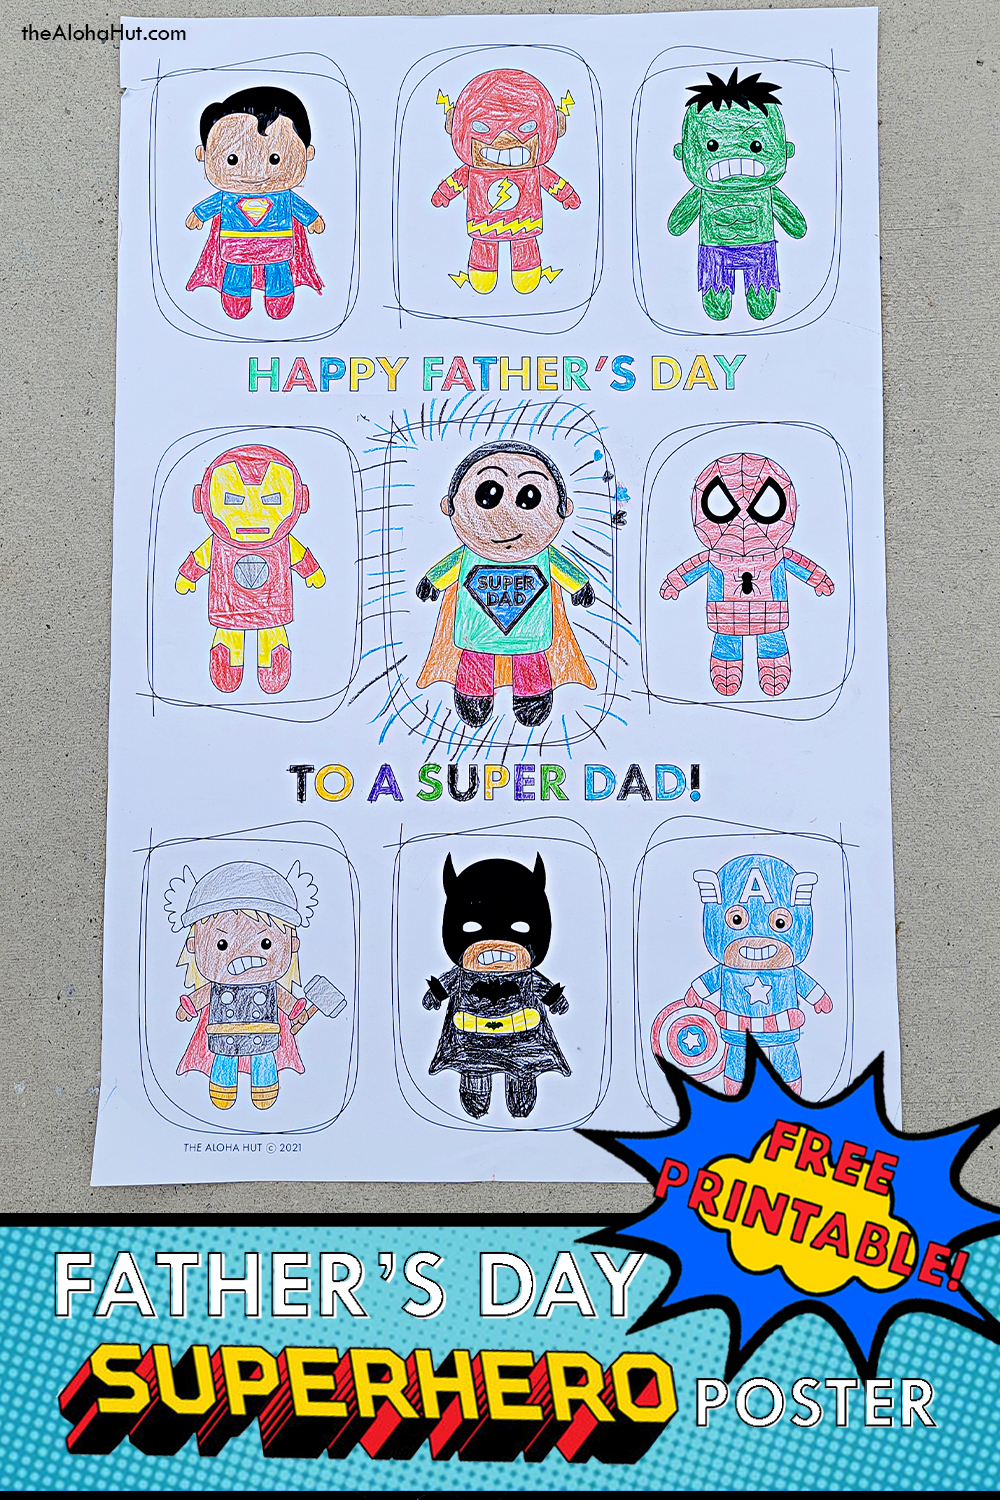 Best Father's Day Gift - Giant Superhero Poster